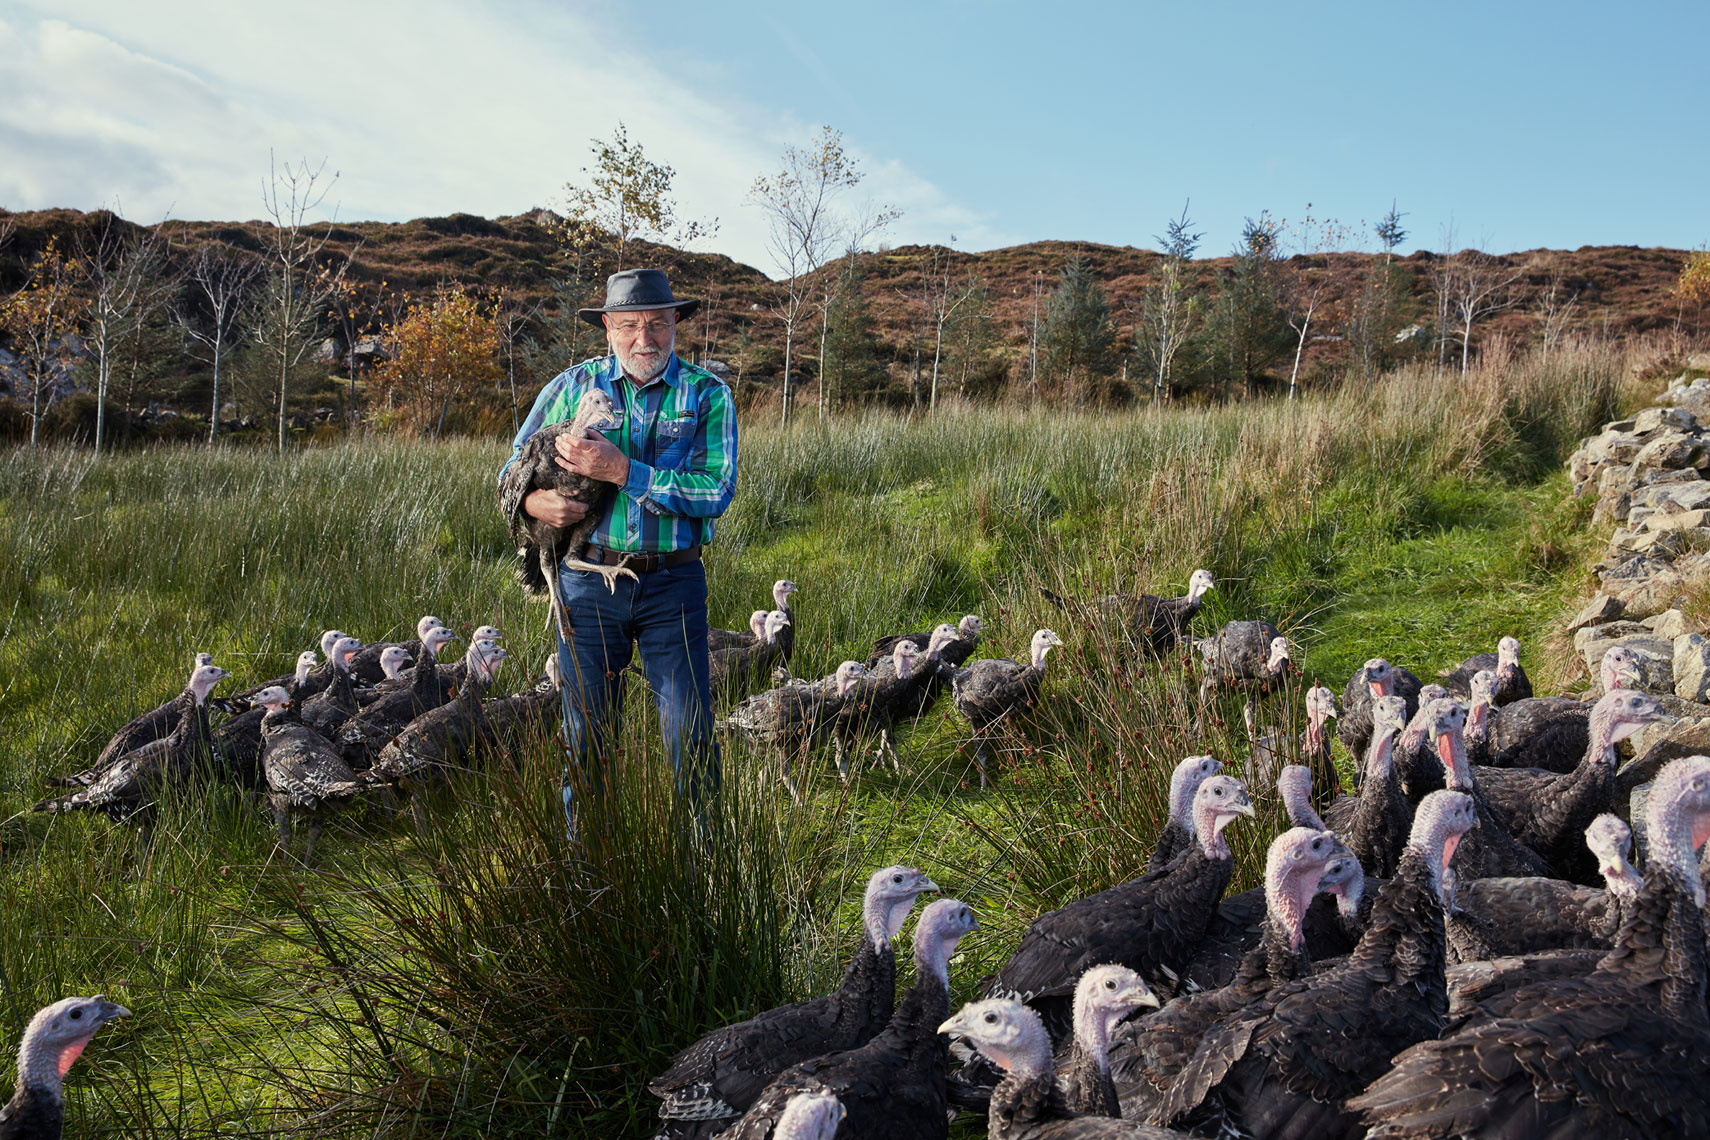 portrait photography: organic turkey farming in Ireland